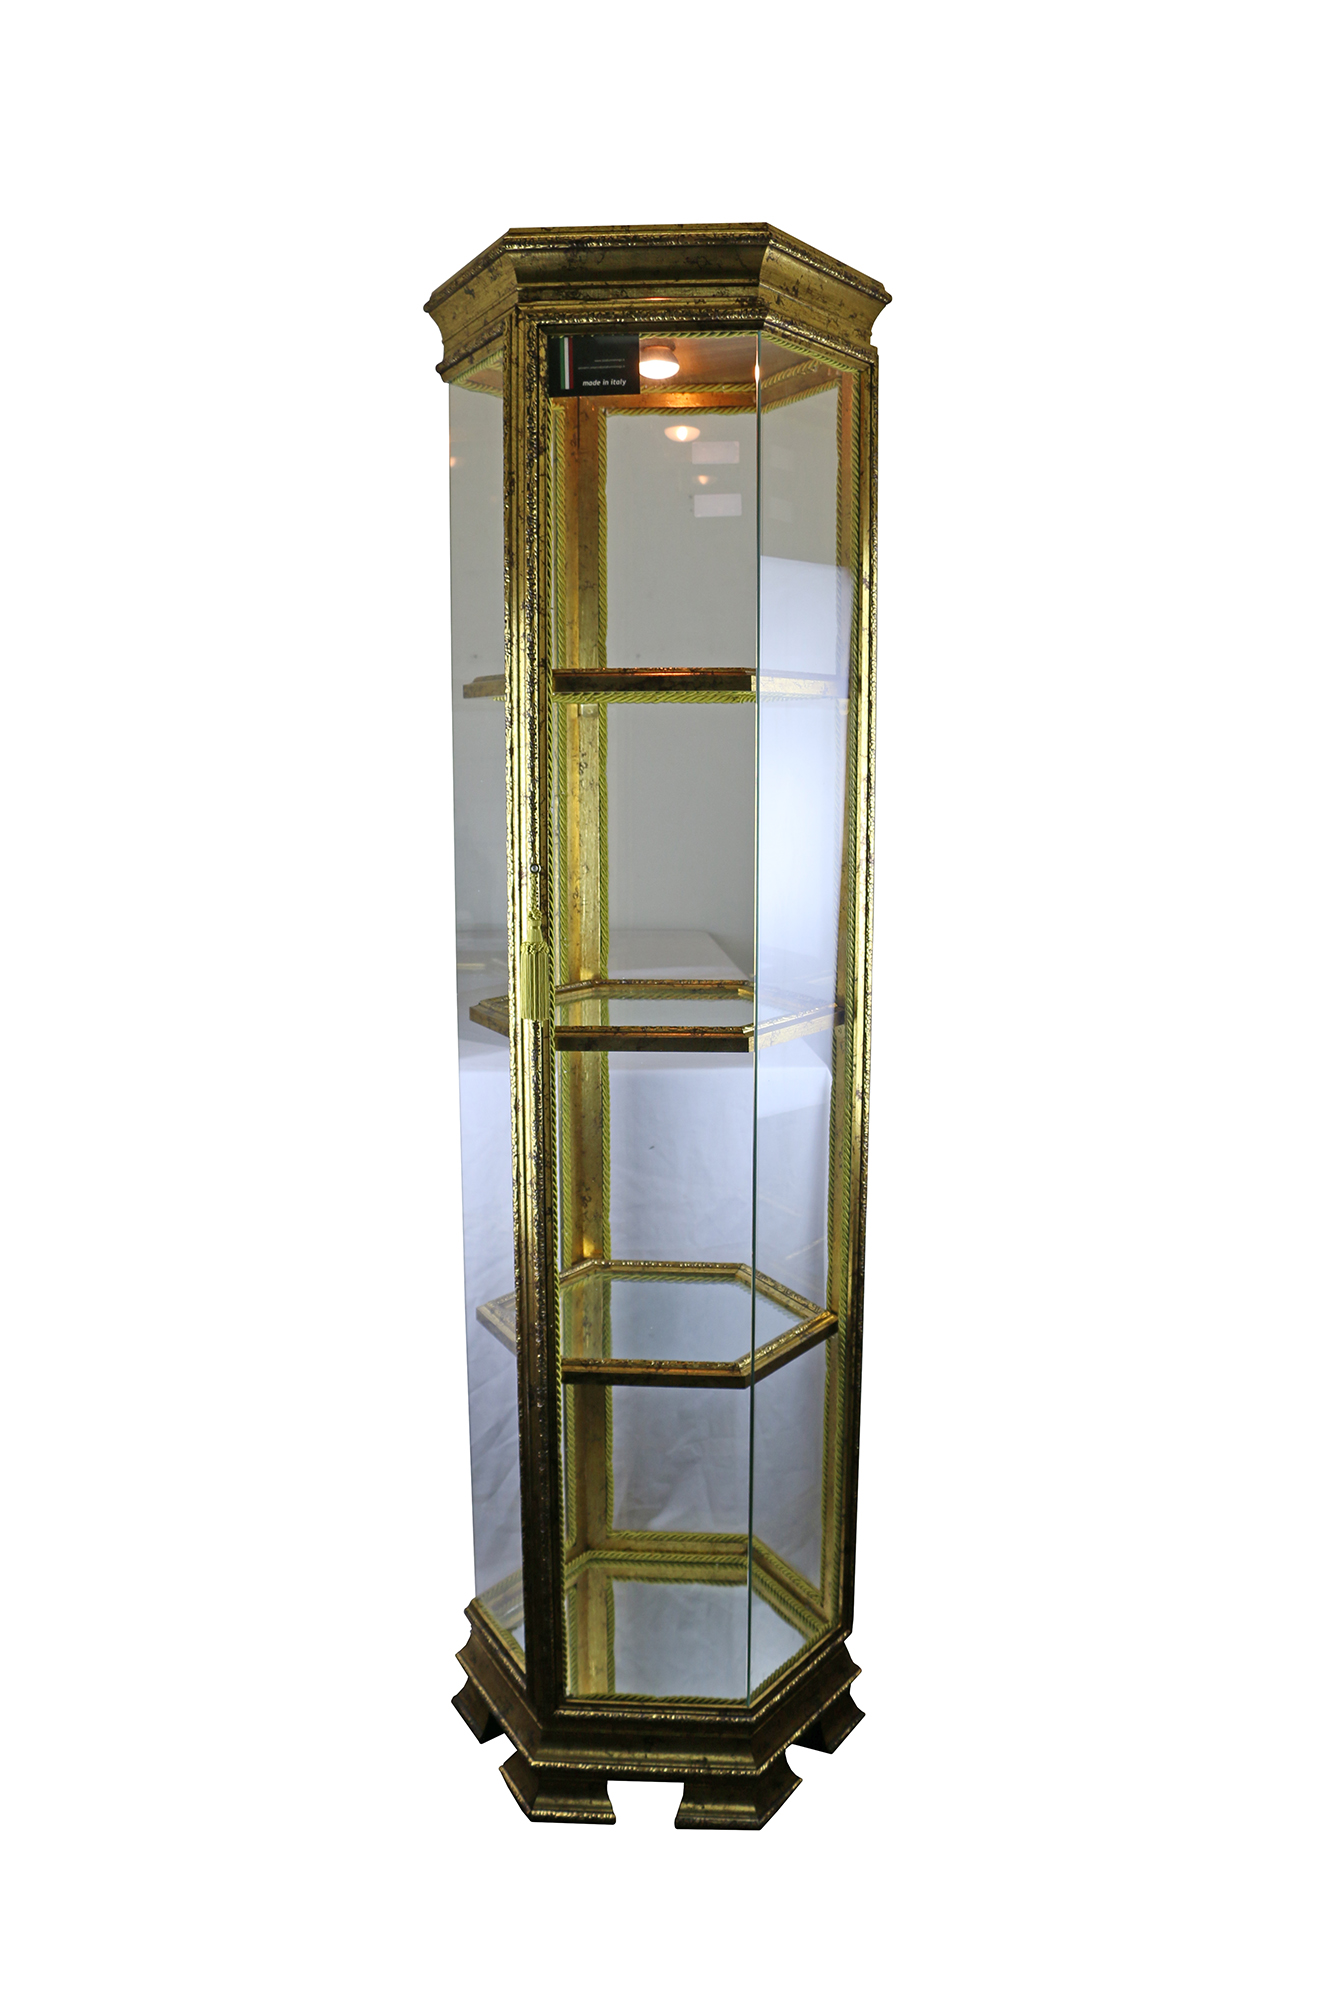 64X20X20 HEXAGONAL ANTIQUE GOLD CURIO